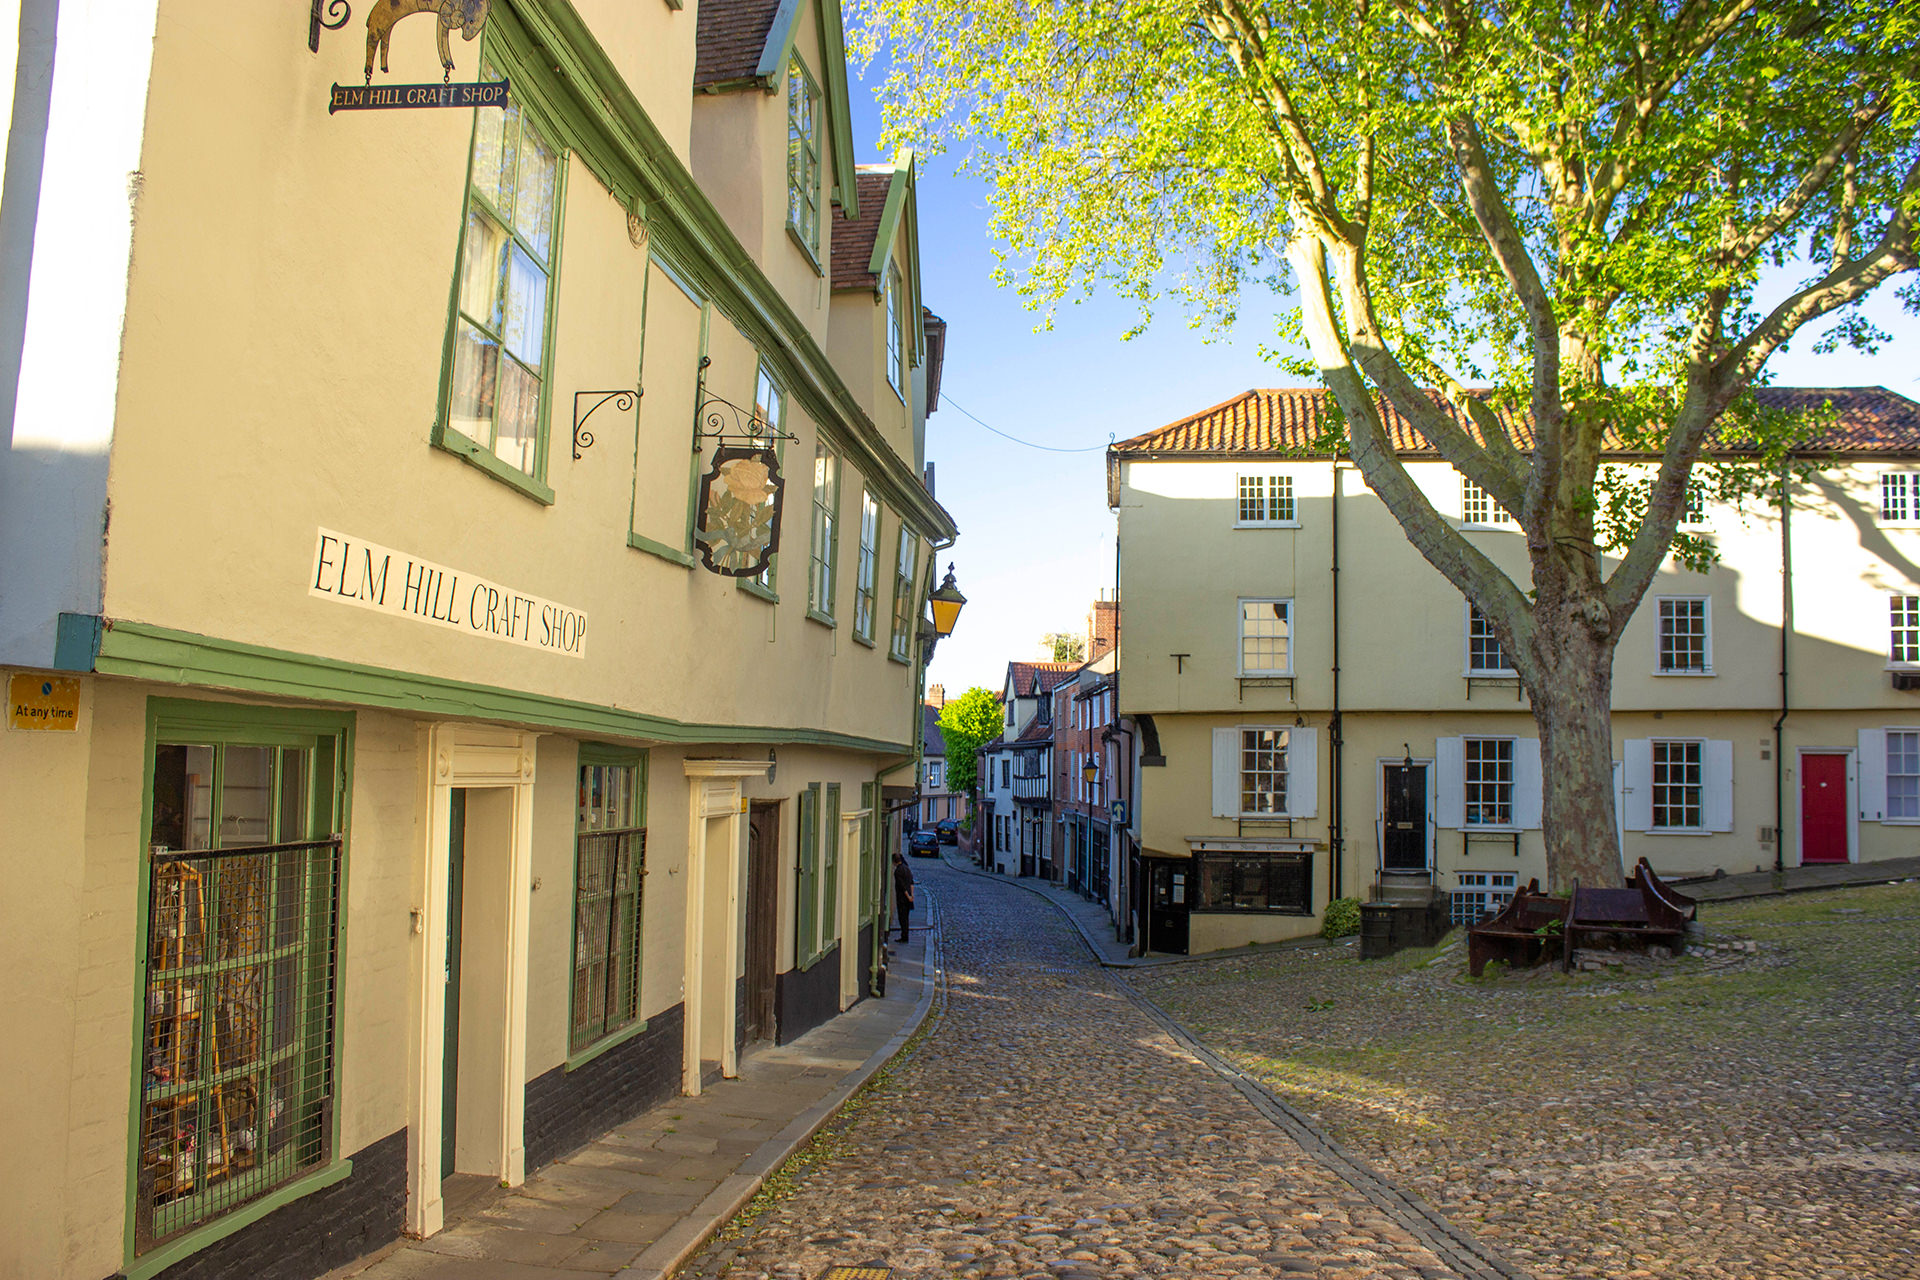 elm hill square and cobbled street with shops